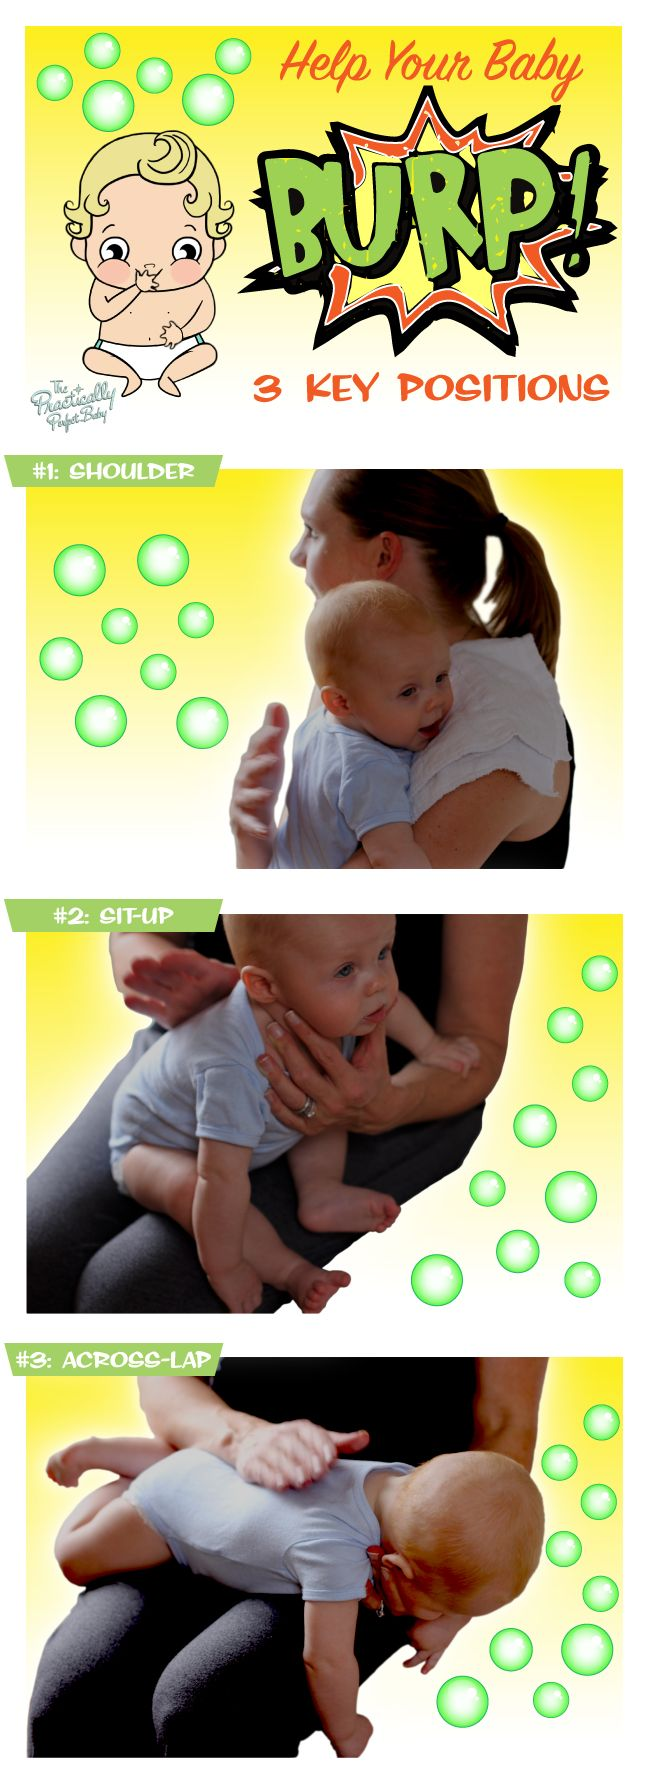 We find the best burping success with these three burping positions! What are yours?